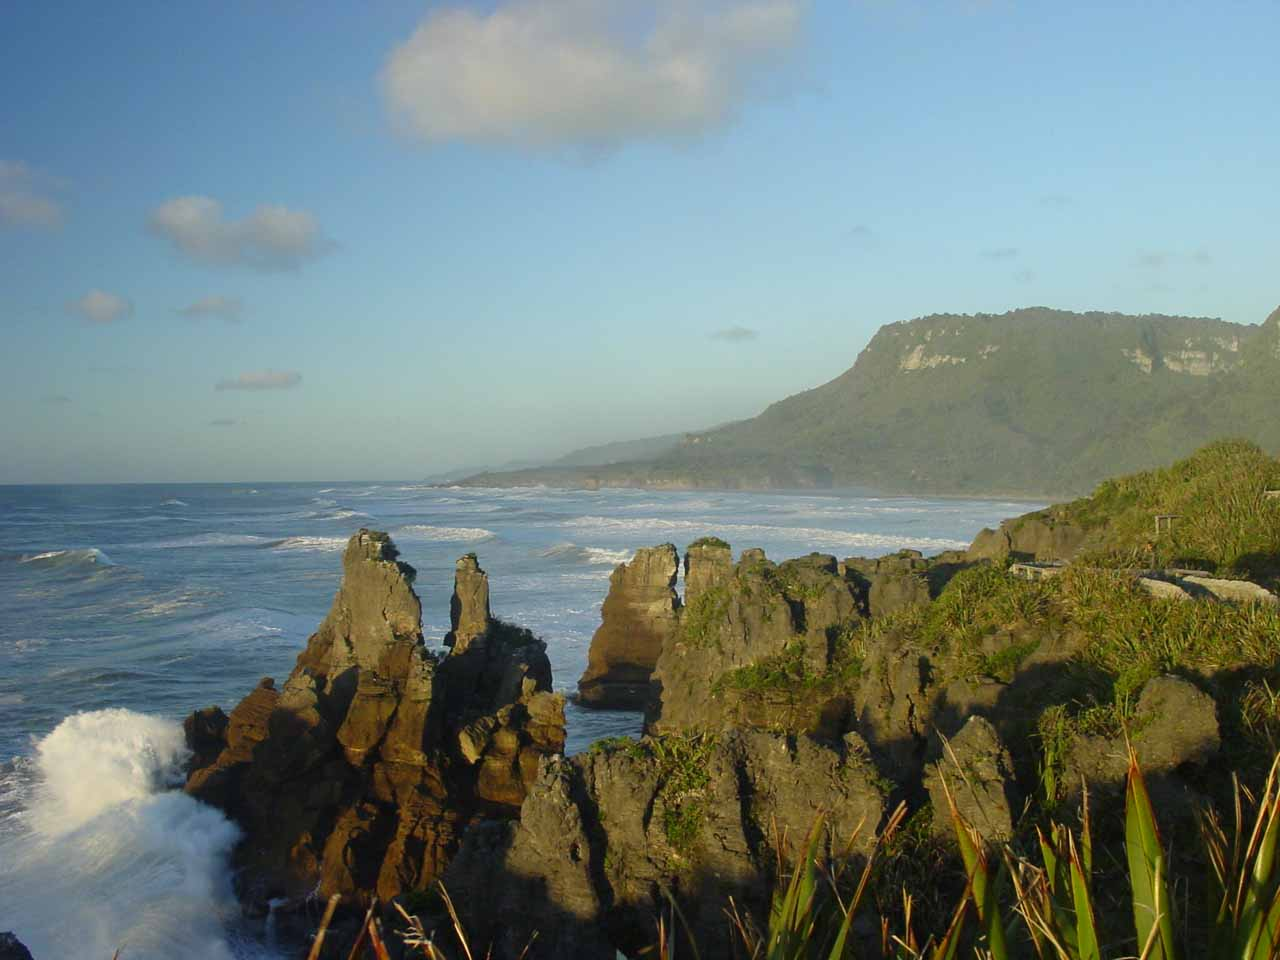 On the day before our visit to Arthur's Pass, we went half-way between Greymouth and Westport to check out the Pancake Rocks at Punakaiki just in time for sunset